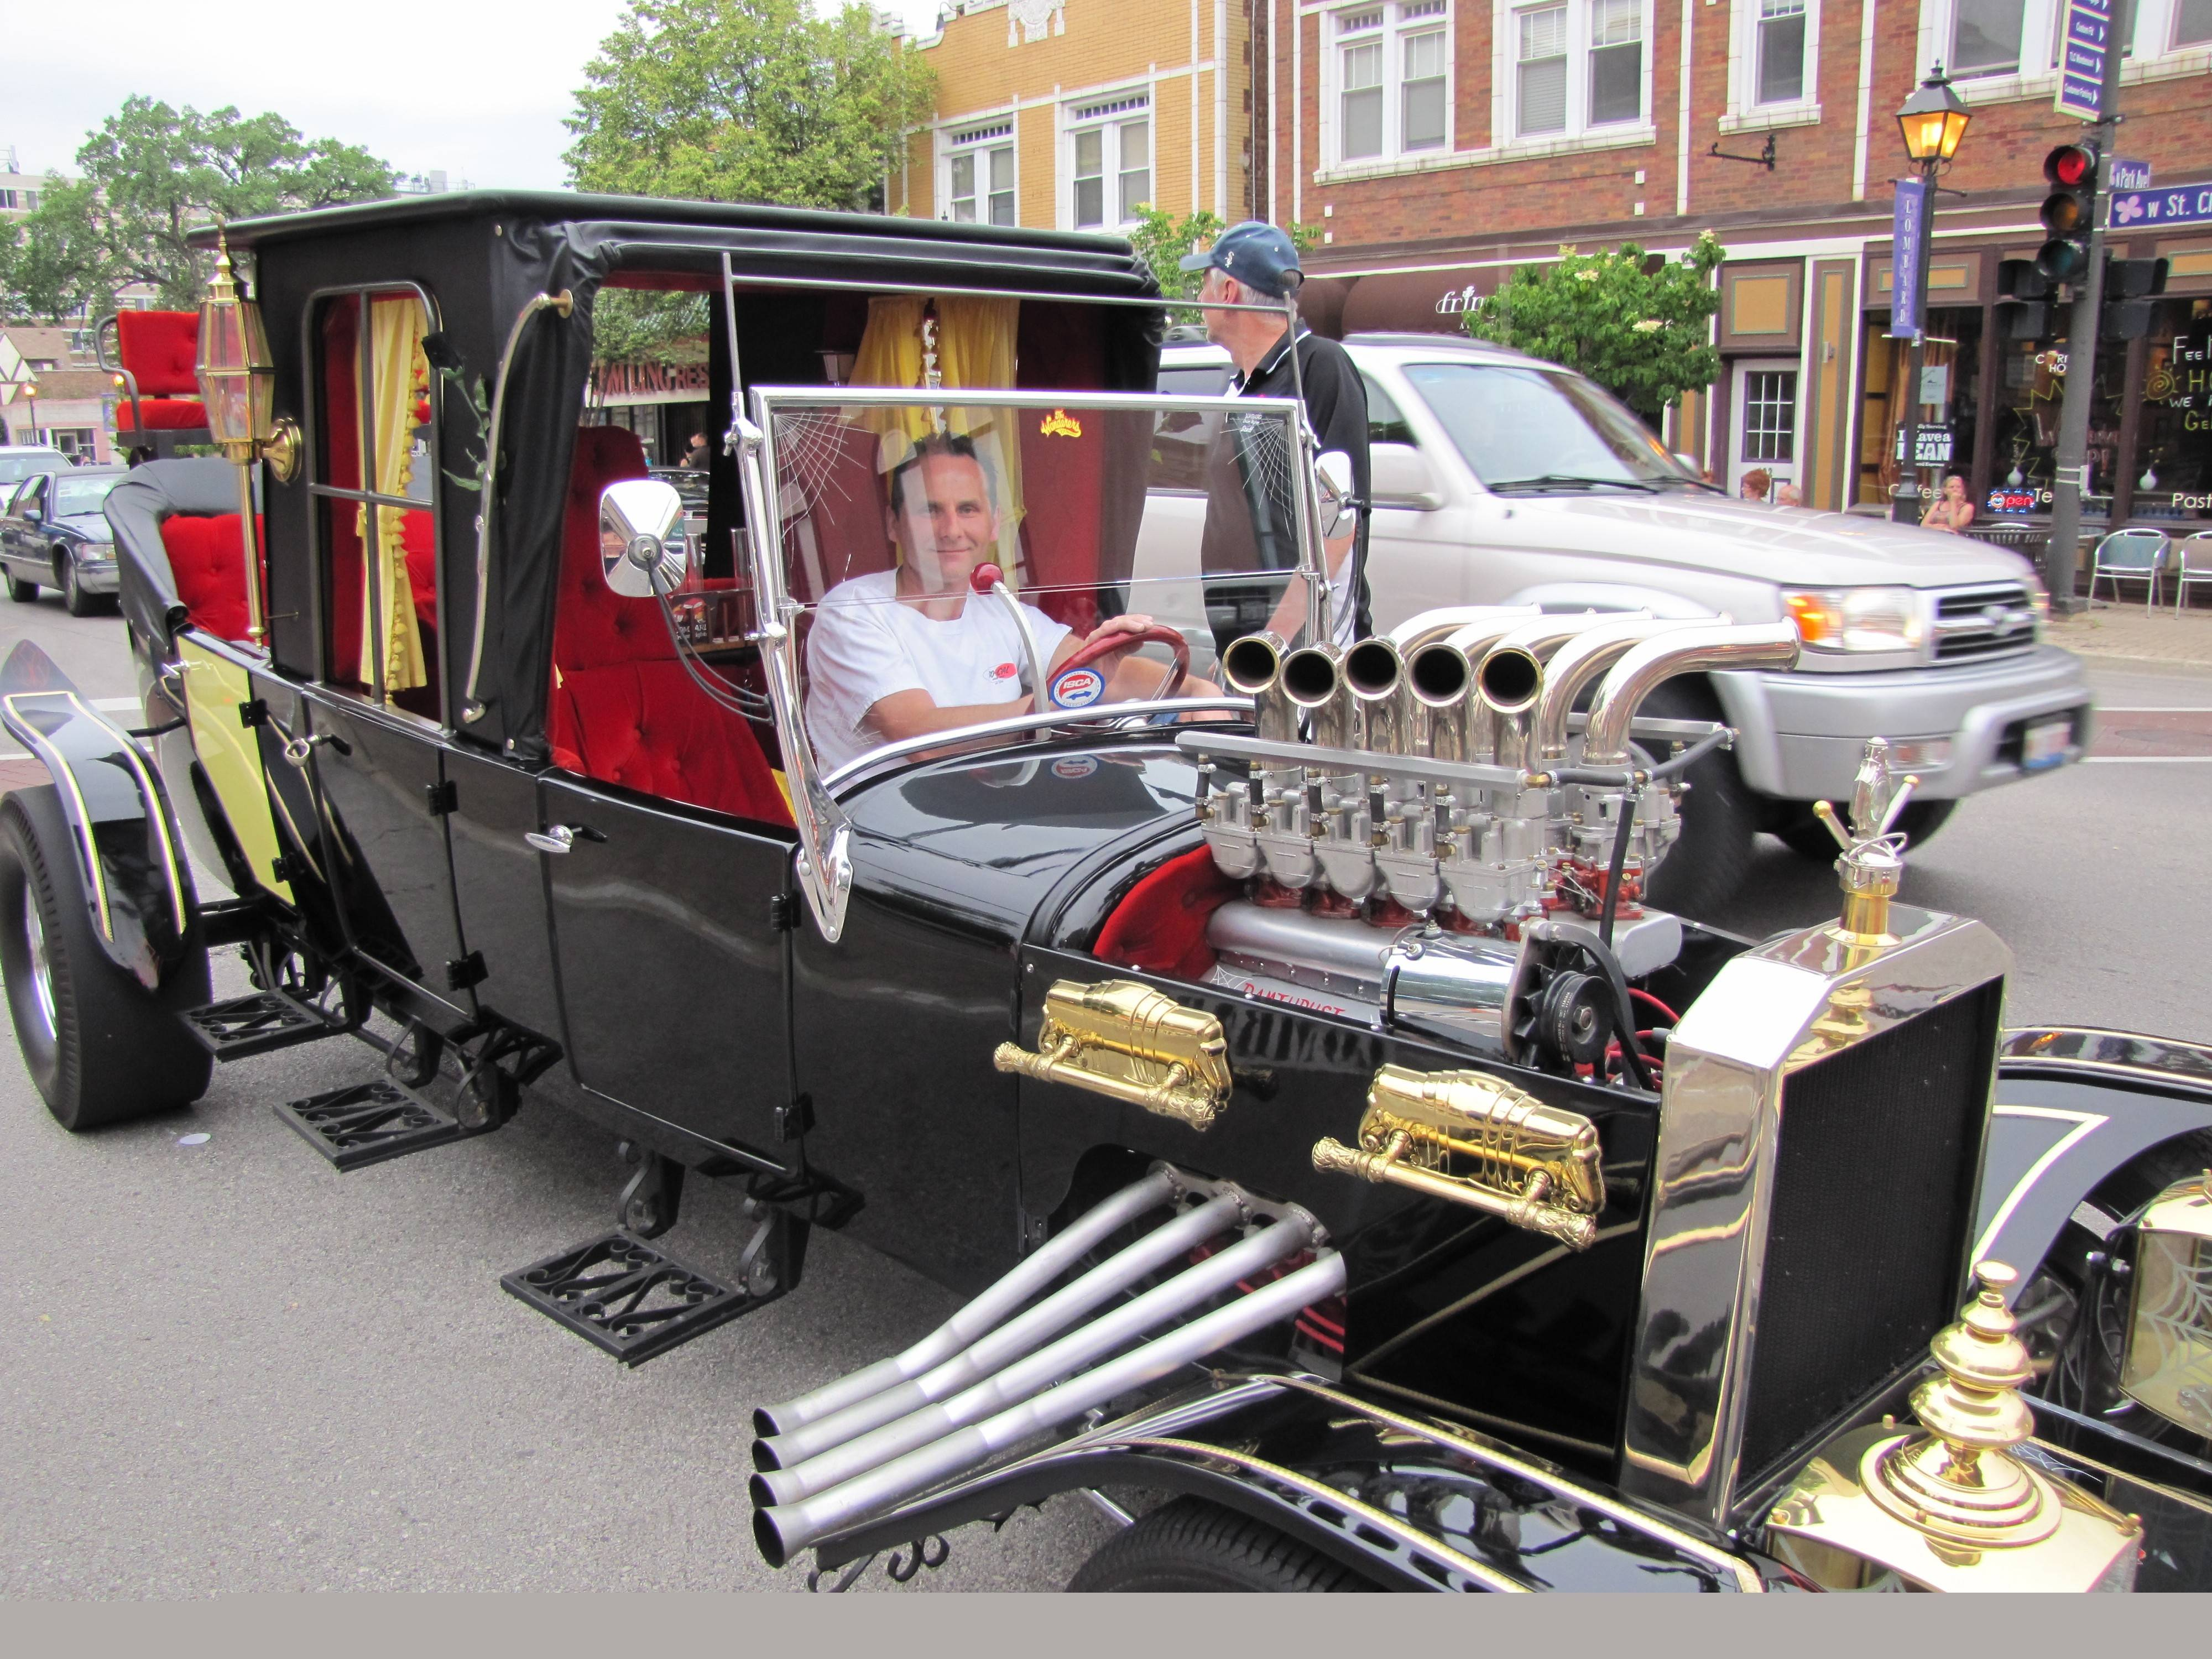 Vintage cars are on display from 6 to 10 p.m. every Saturday -- except for July 5 -- through Aug. 30 in downtown Lombard for Cruise Nights.